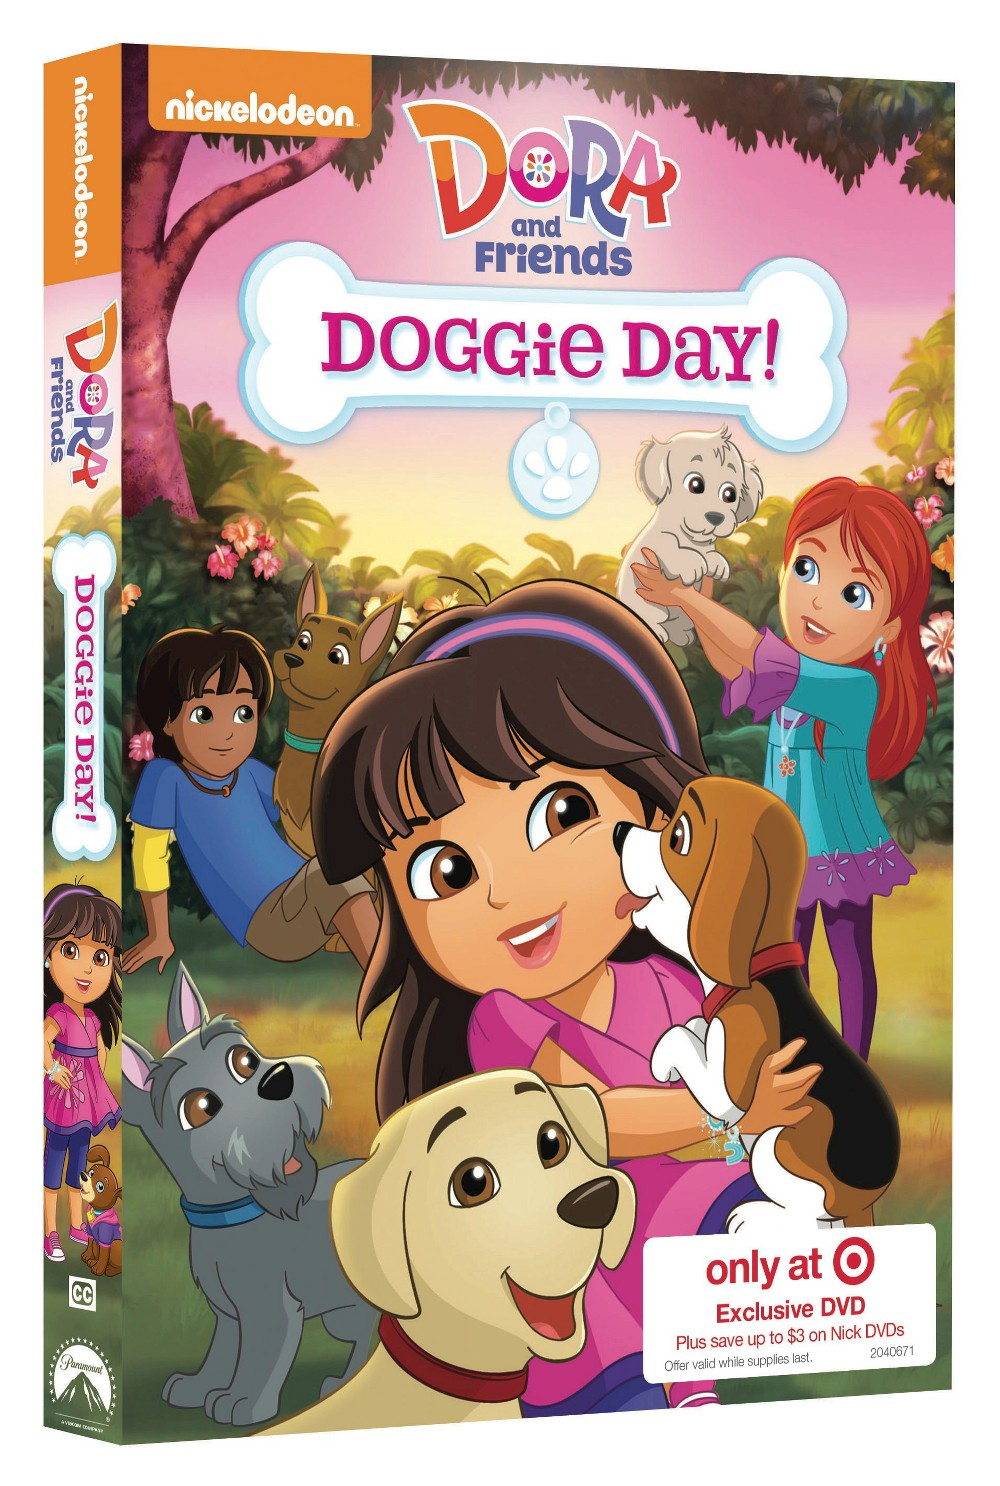 Dora and Friends: Doggie Day (Dvd) (Target Exclusive)